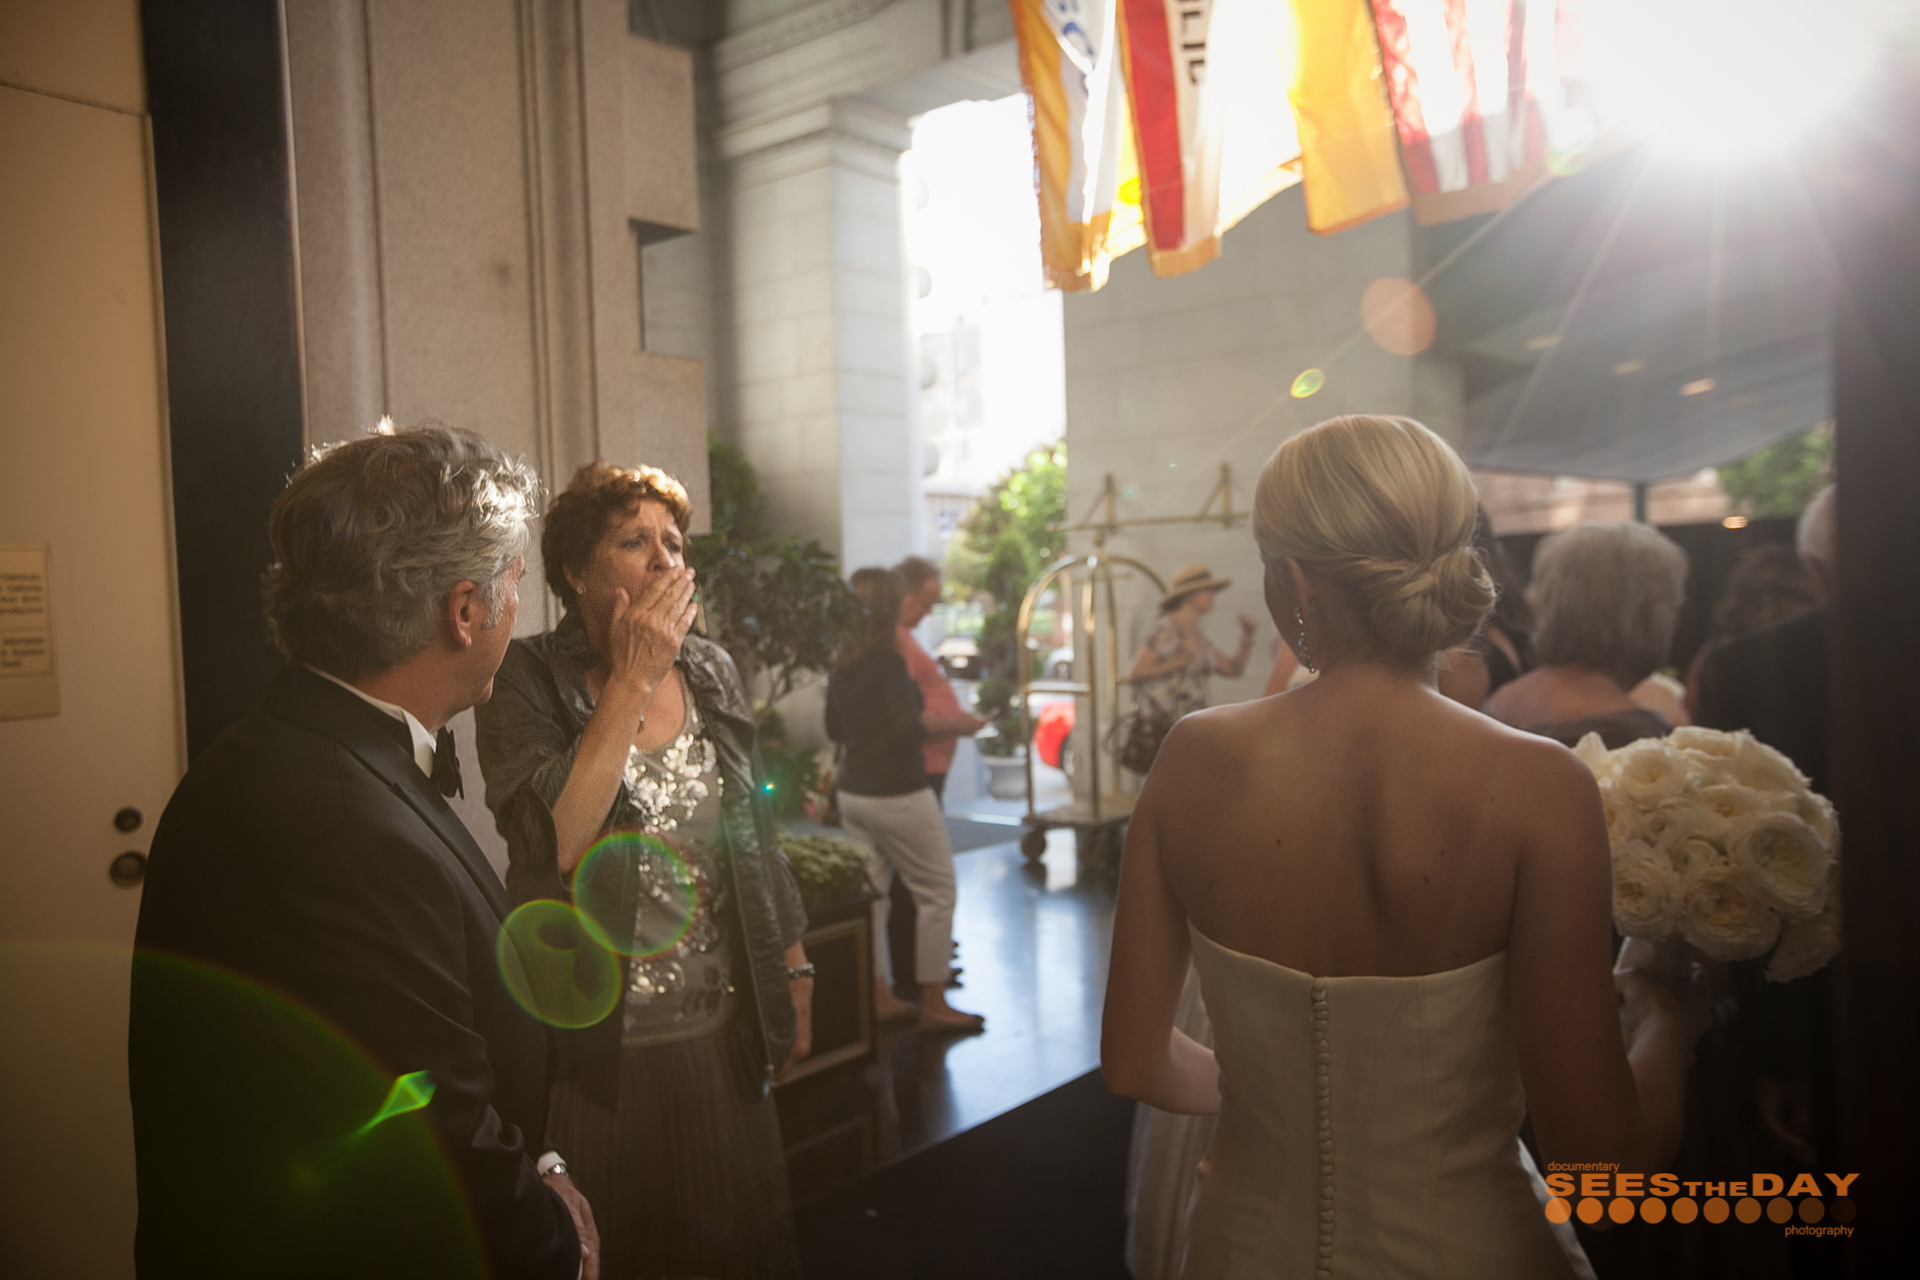 San_Francisco_Wedding_Photographer_Sees_The_Day_013-2.jpg